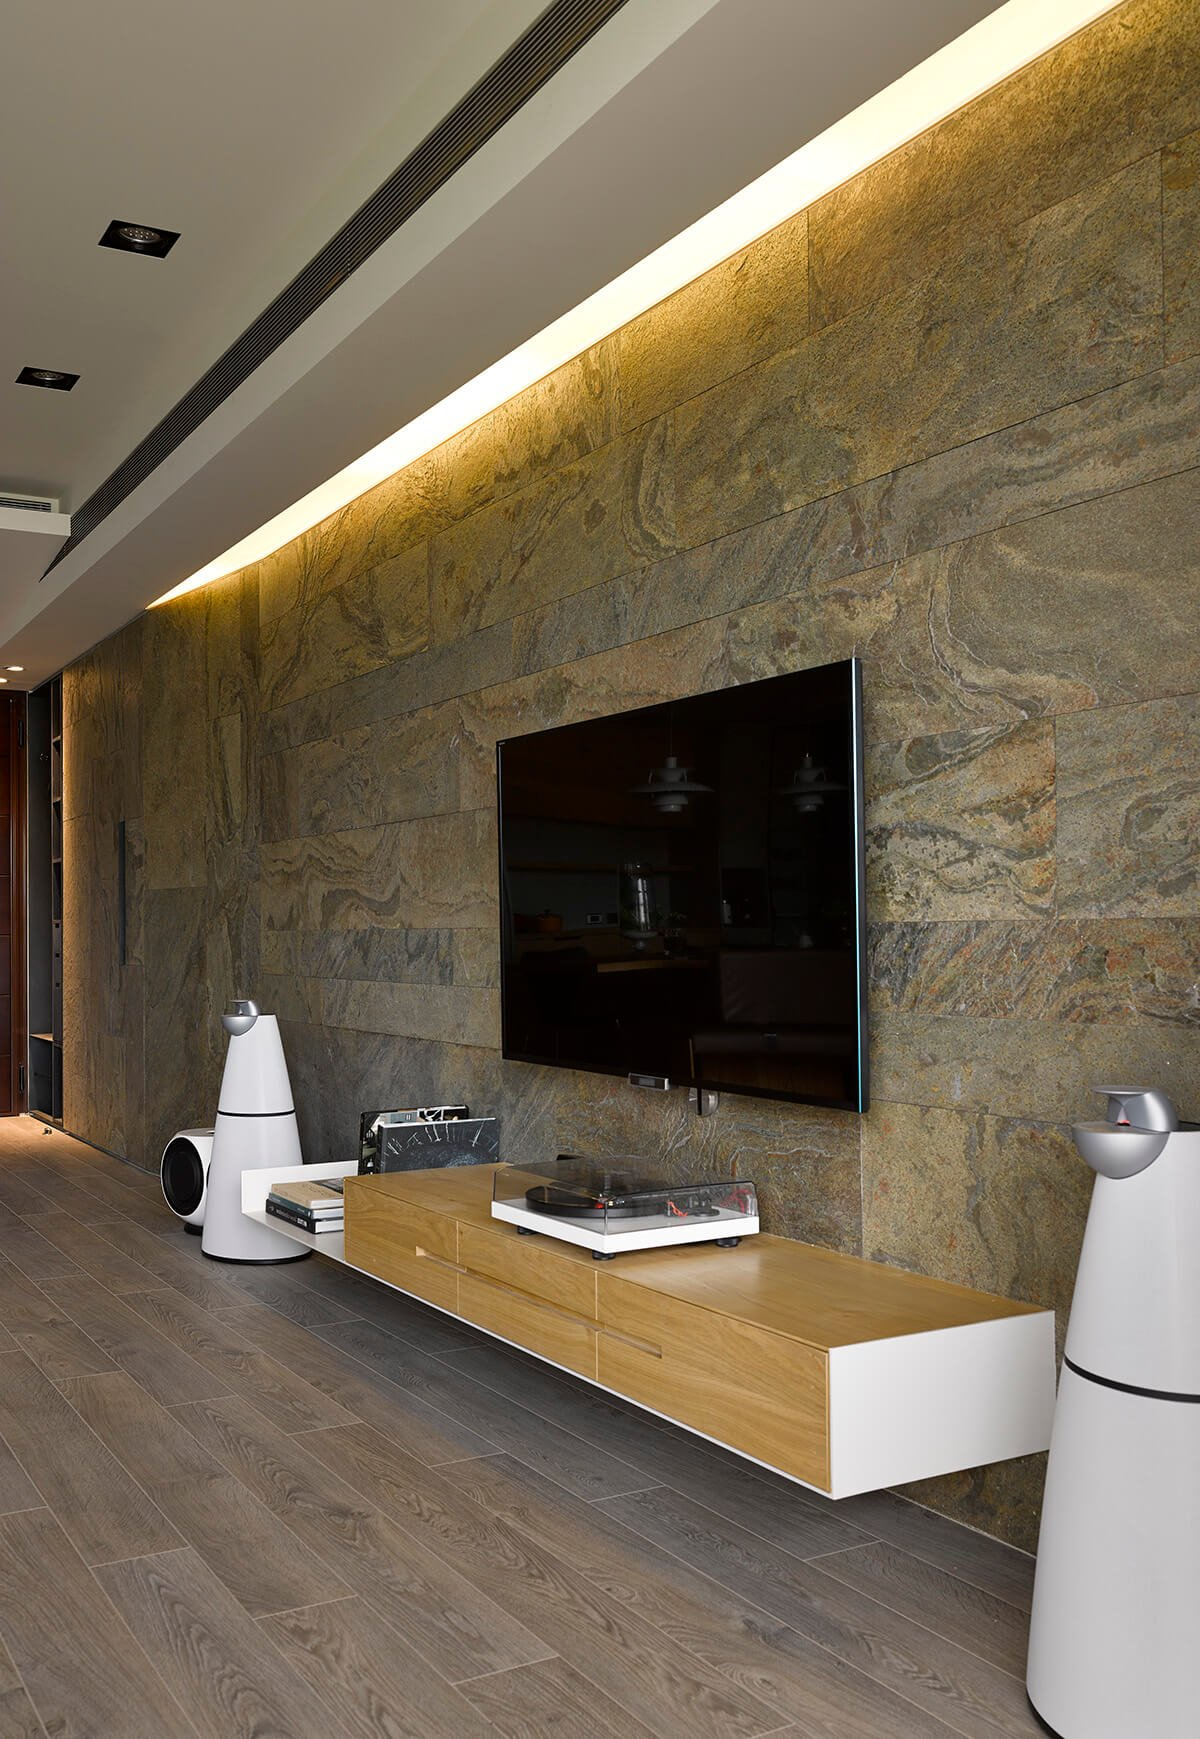 Because so much of the design here stems from the owner's preferences, we see the inspiration appearing in tangible form across the home. Here, a high end turntable sits below the television, a sharply designed instrument reflecting the values behind the home itself.